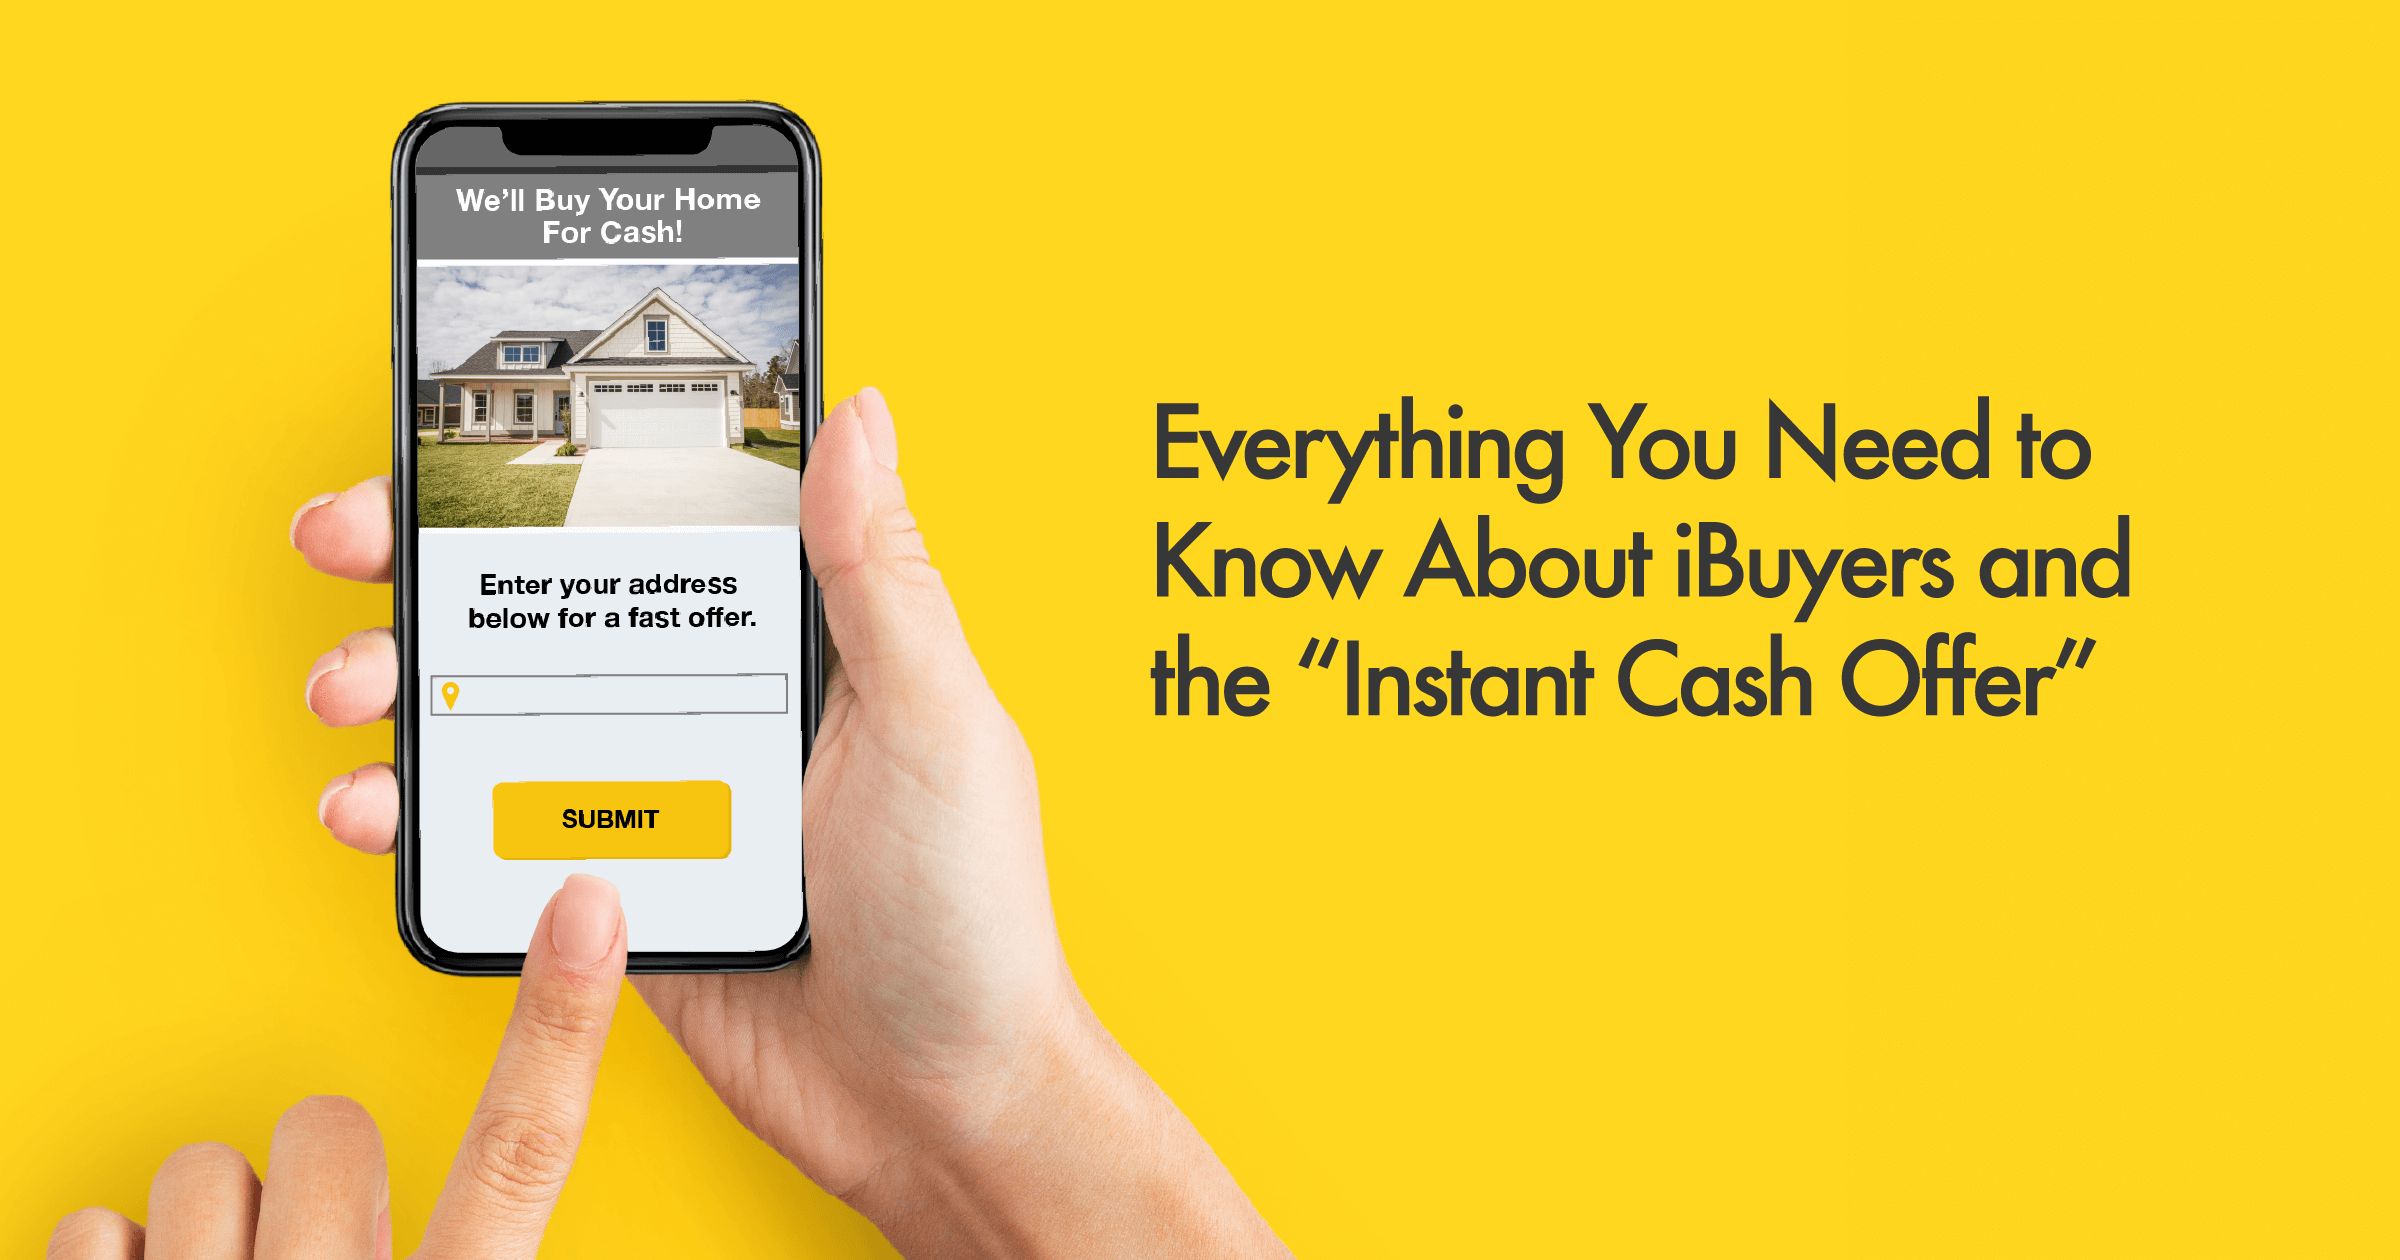 Everything You Need to Know About iBuyers